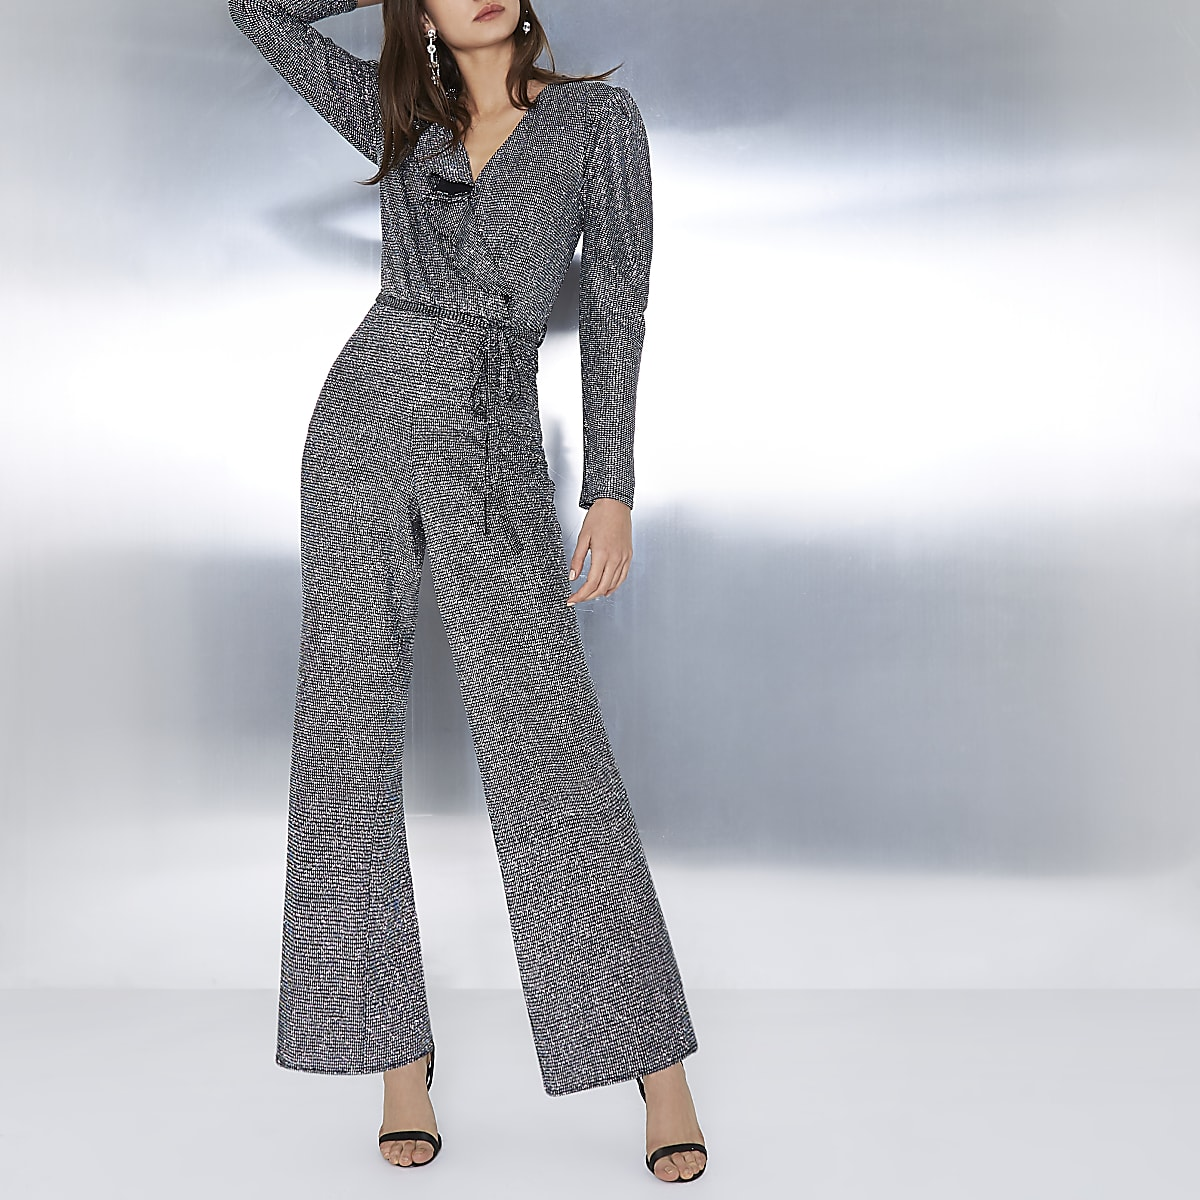 Silver glitter wrap frill belted jumpsuit